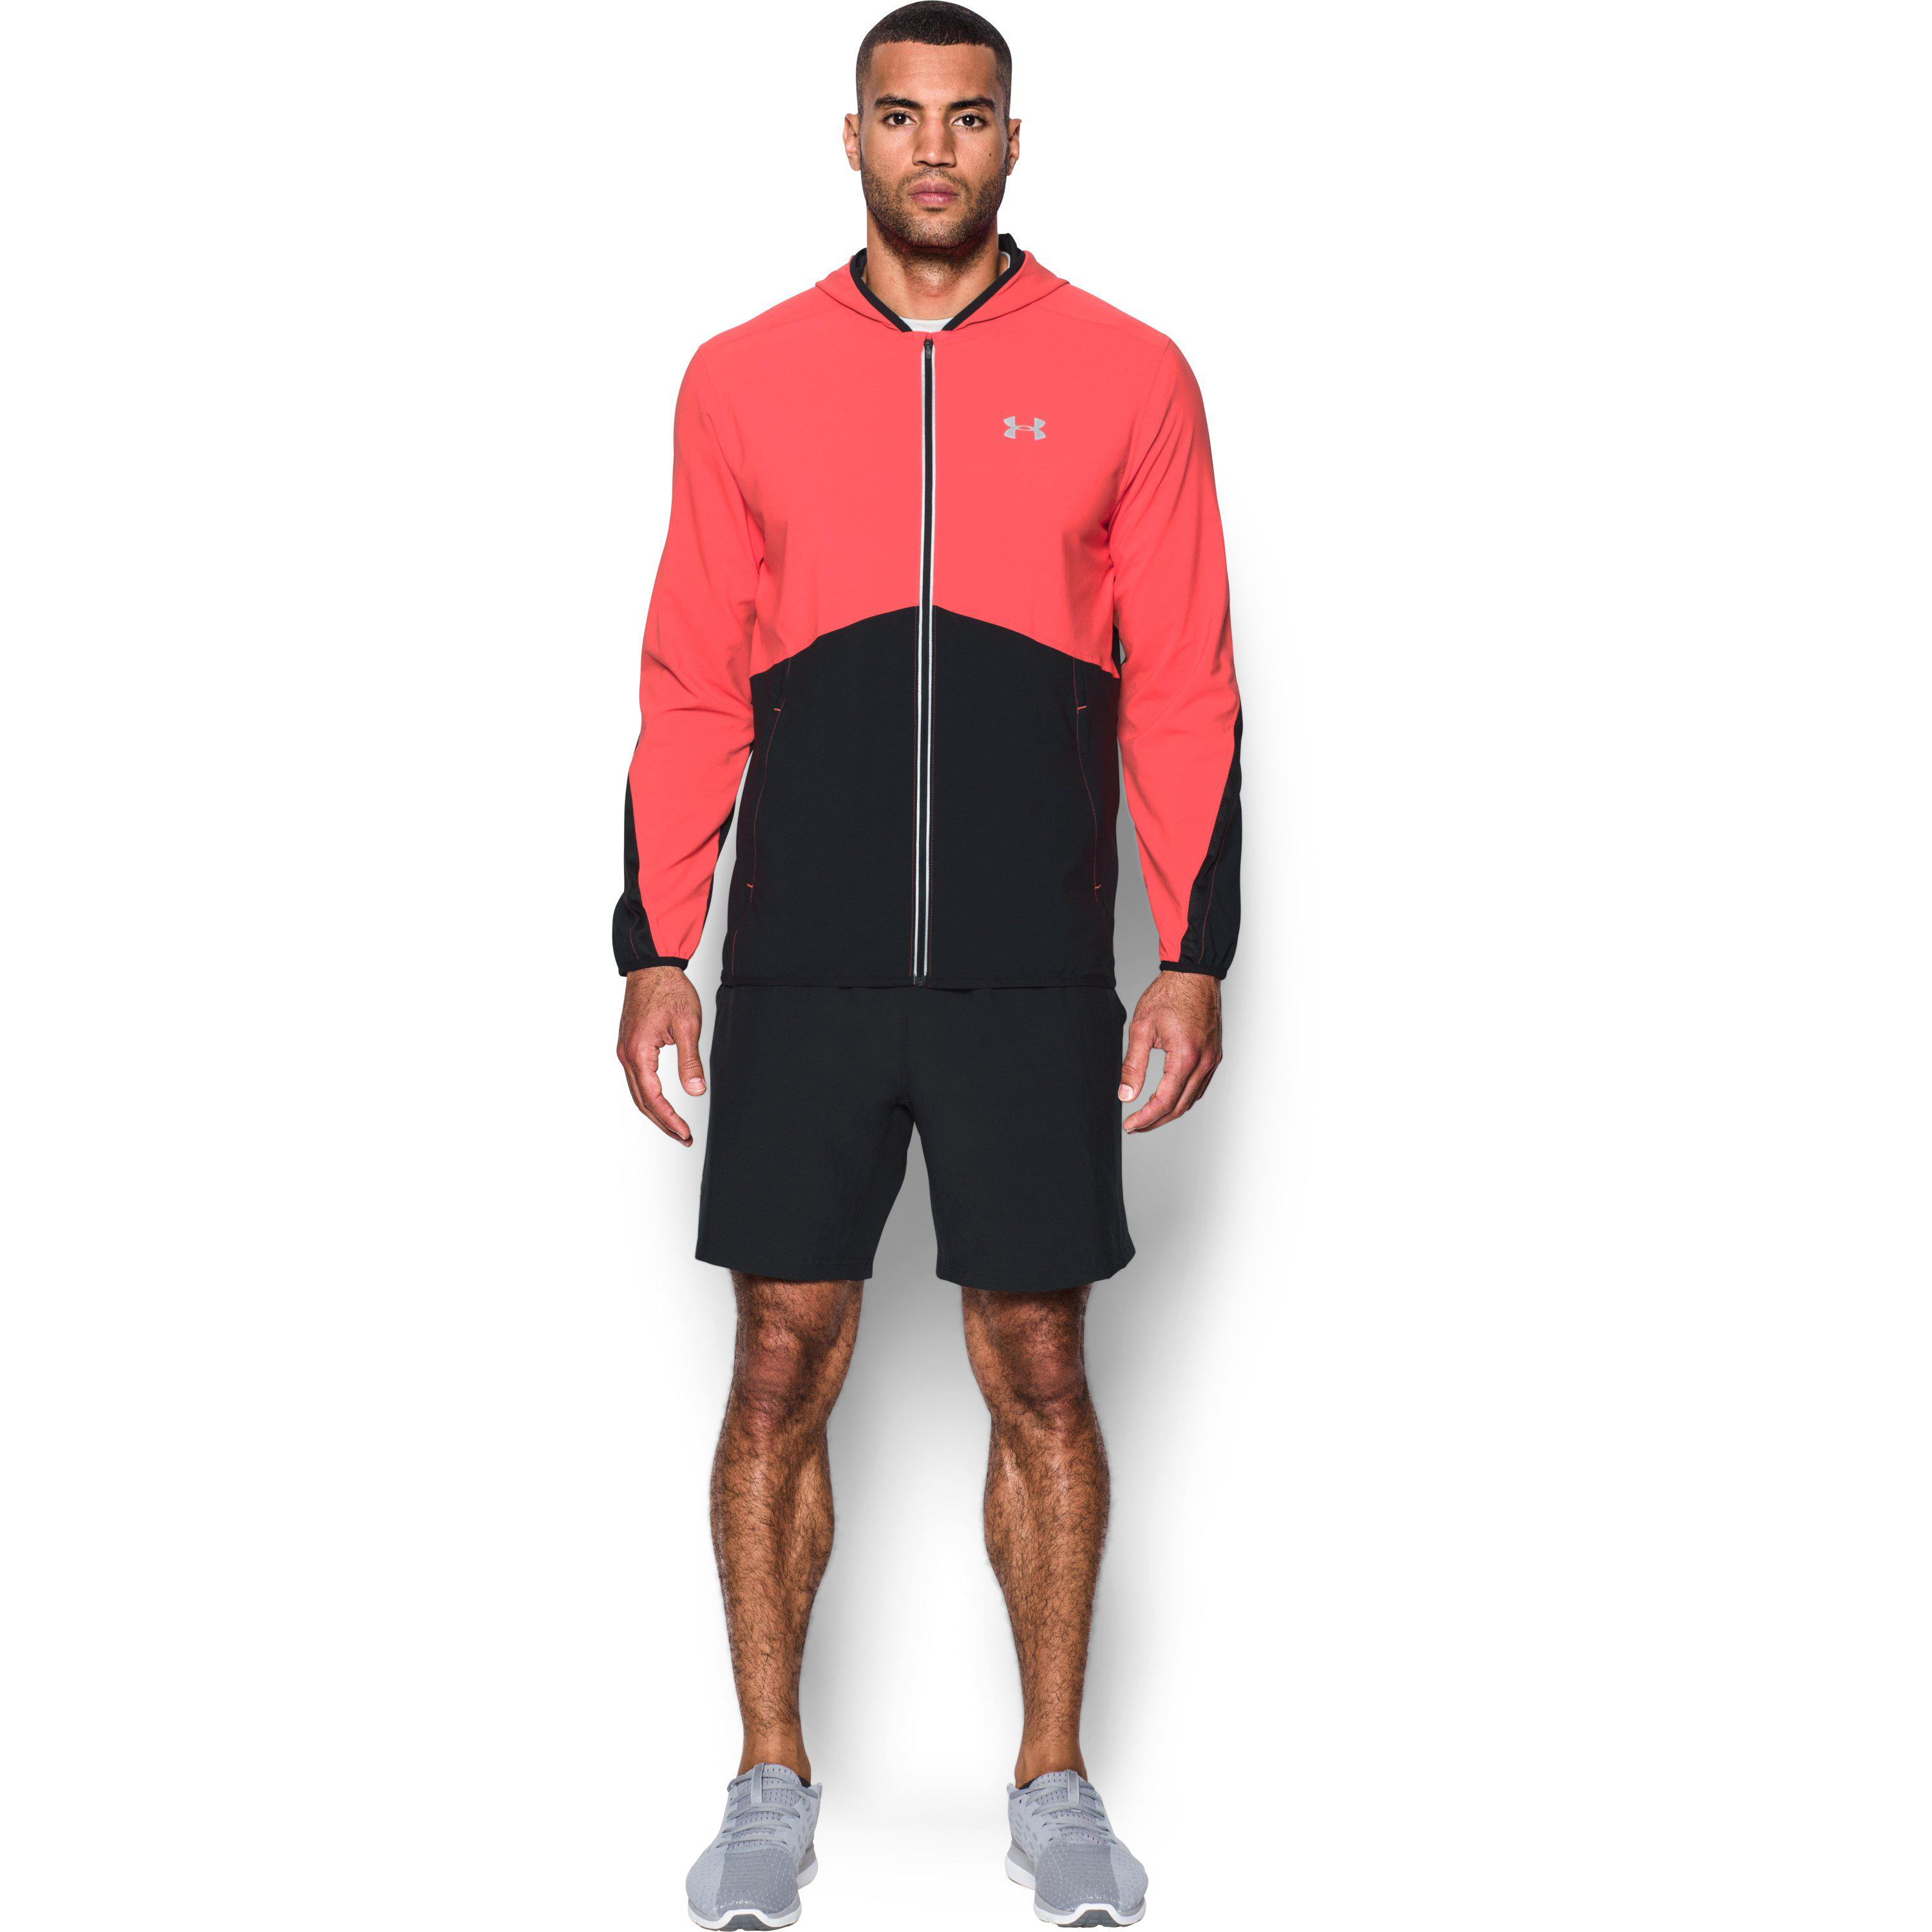 Lyst - Under Armour Men s Ua Run True Jacket in Red for Men a27a03f8e